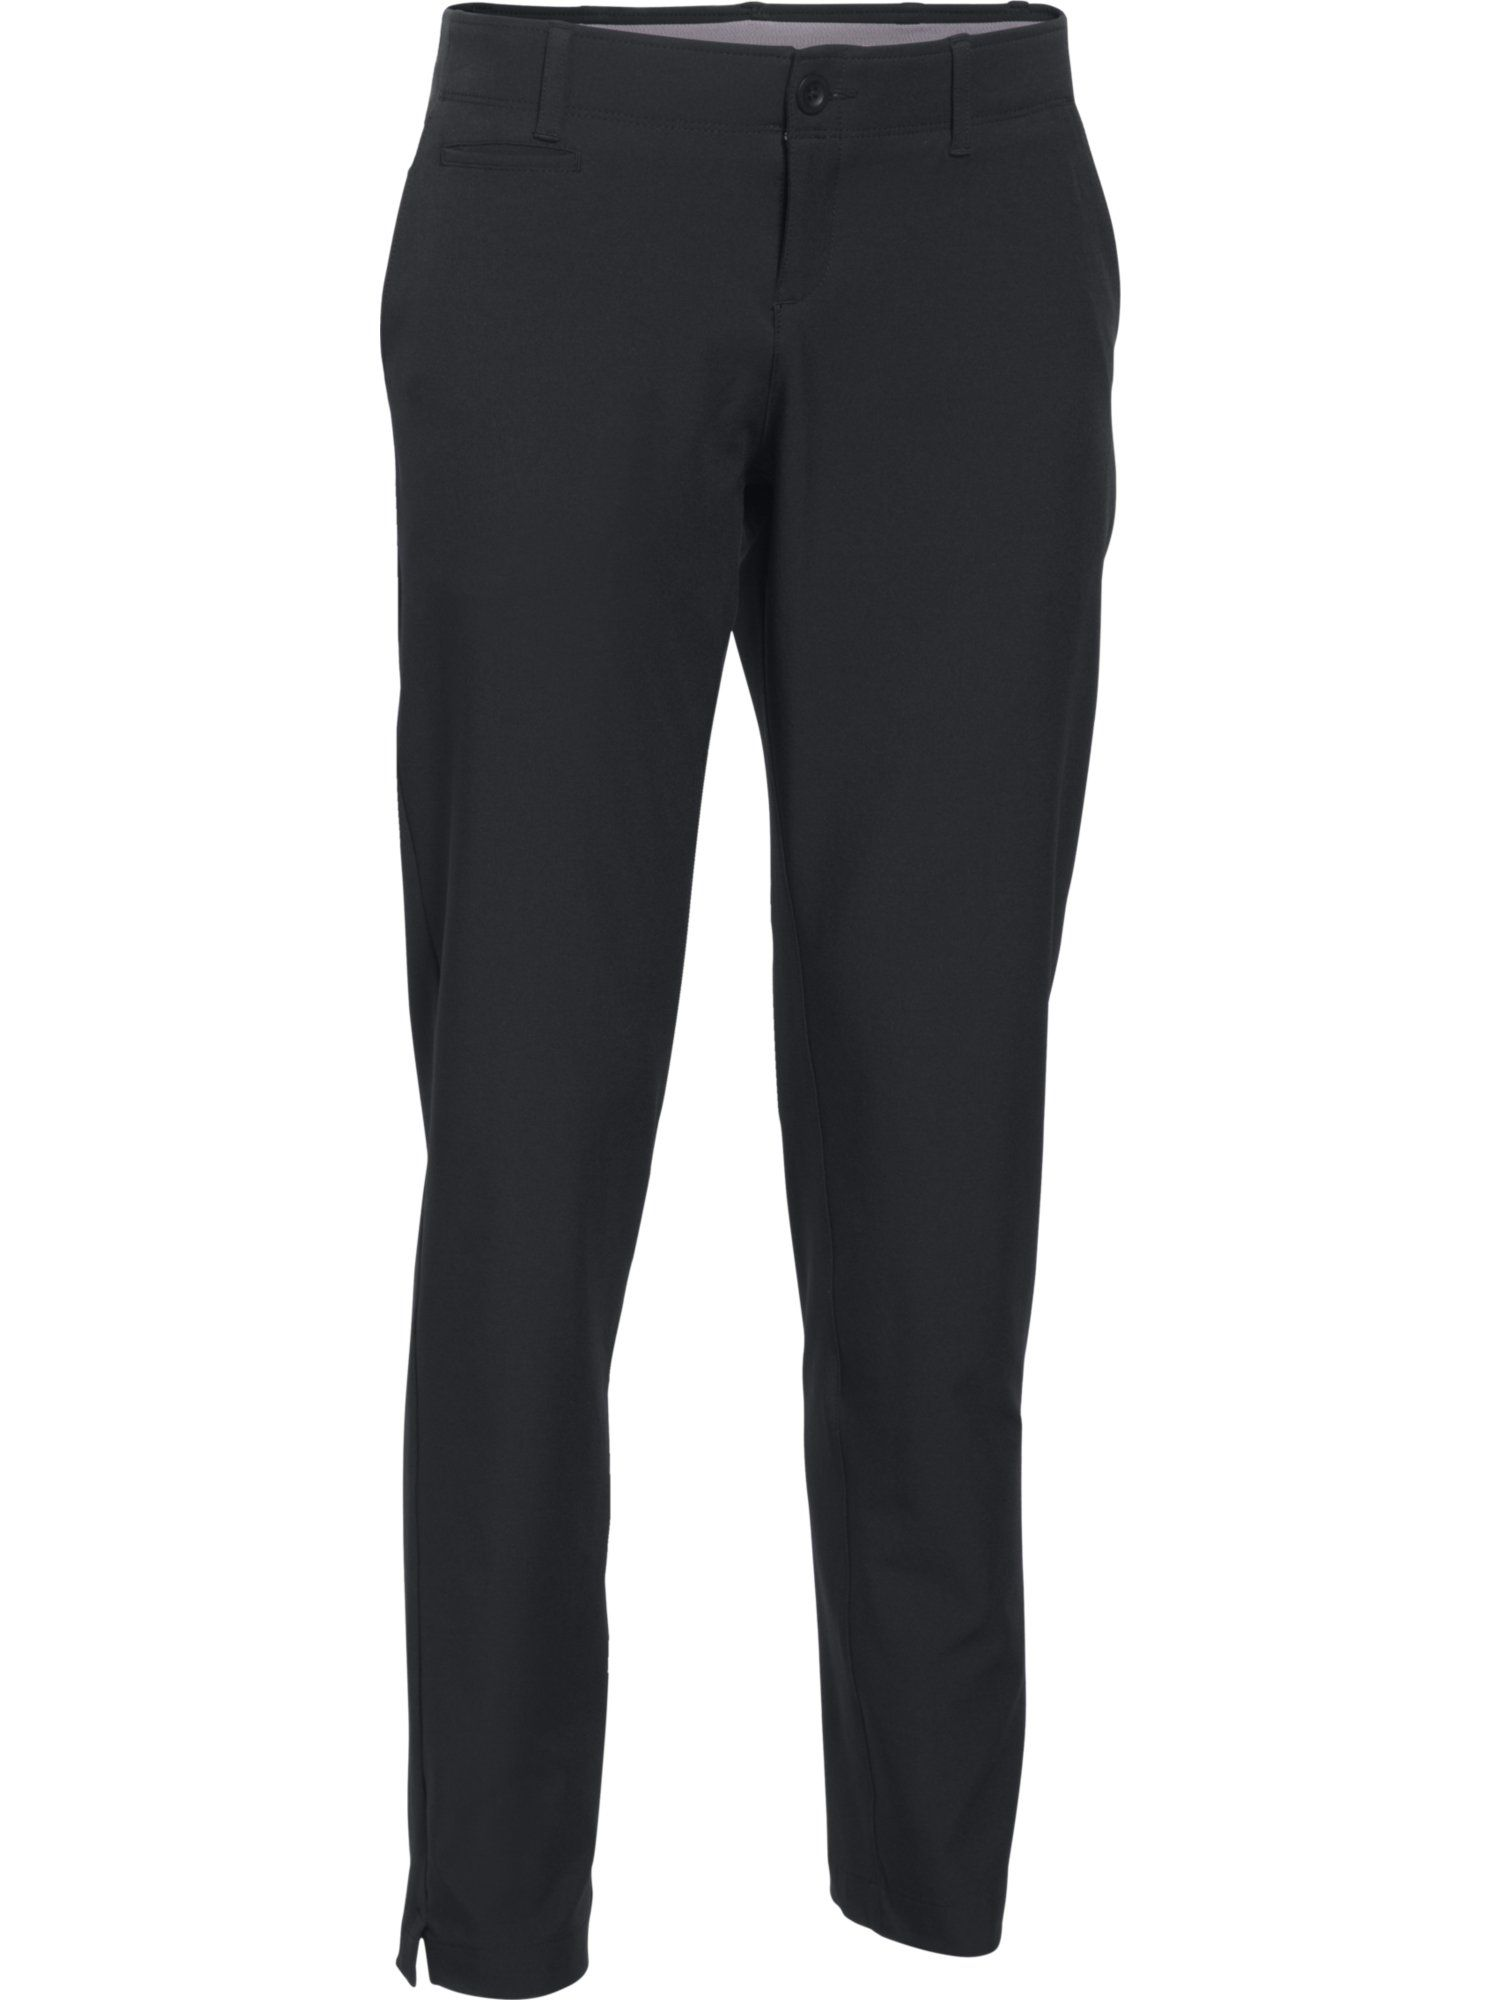 Under Armour Links Trousers, Black